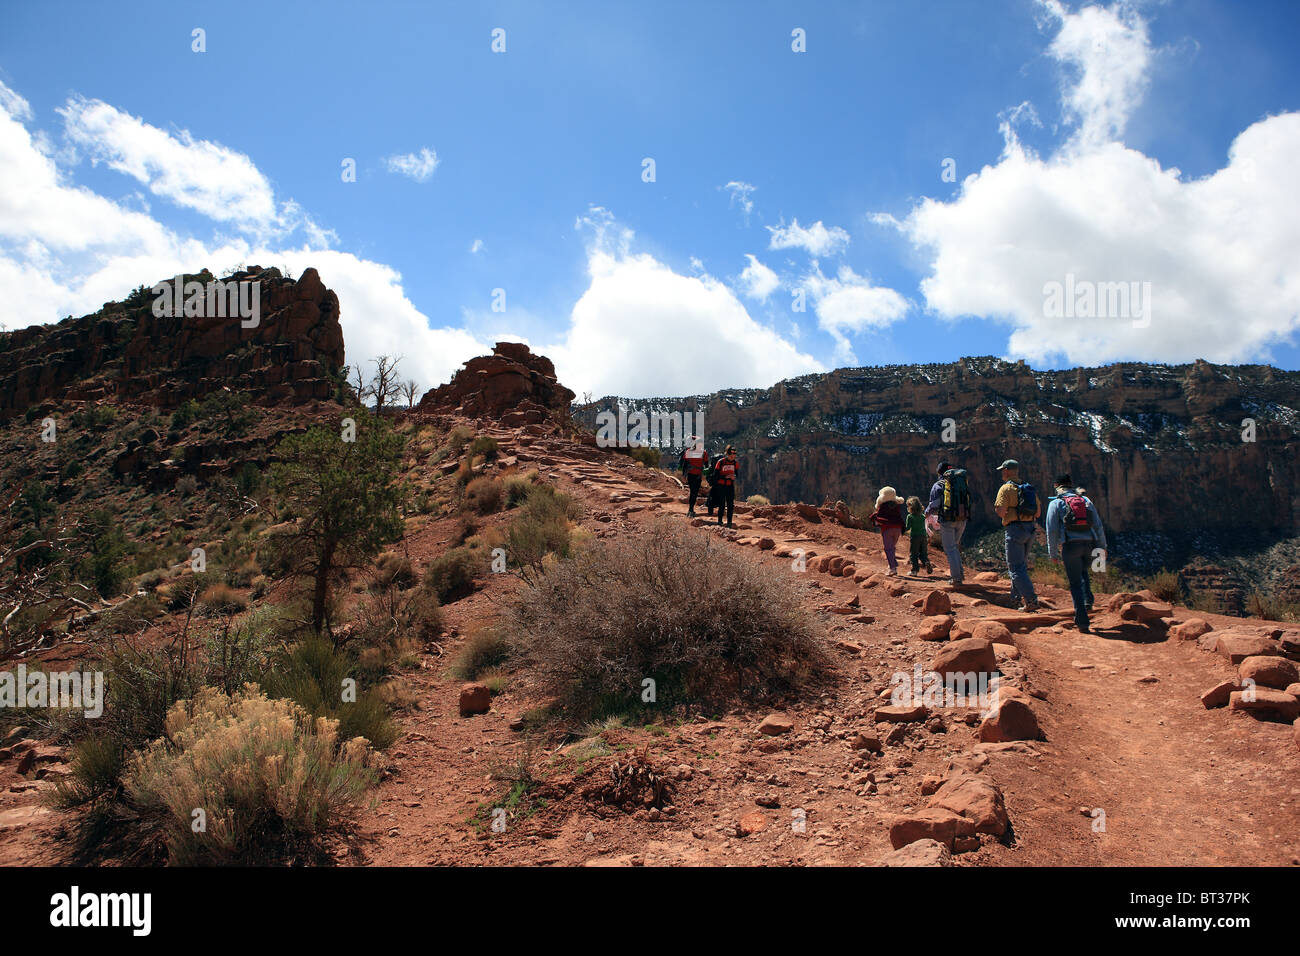 Hikers on the Kaibab Trail in the Grand Canyon - Stock Image